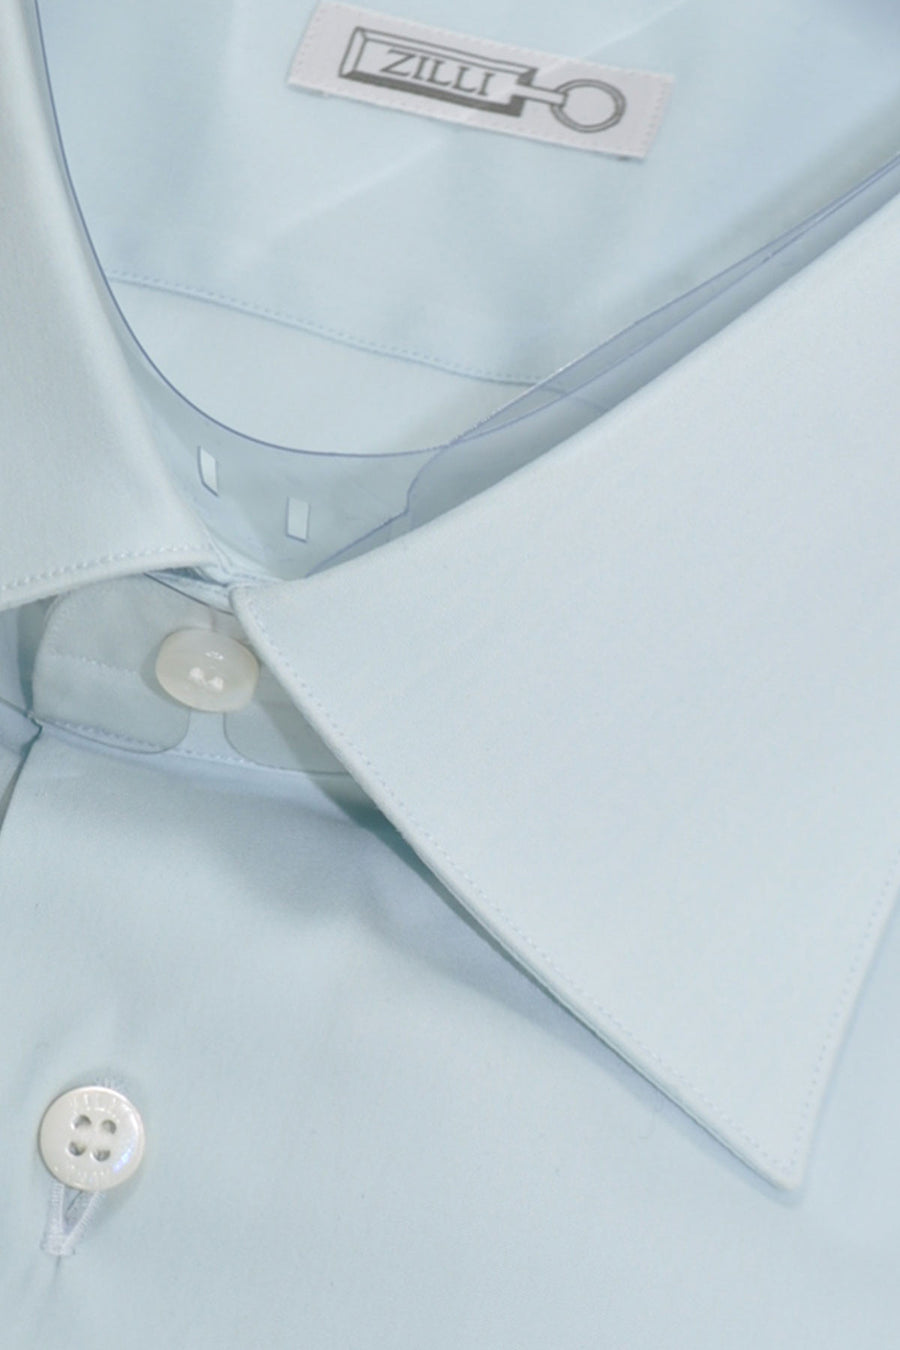 Zilli Shirt Powder Blue Dress Shirt 43 - 17 SALE